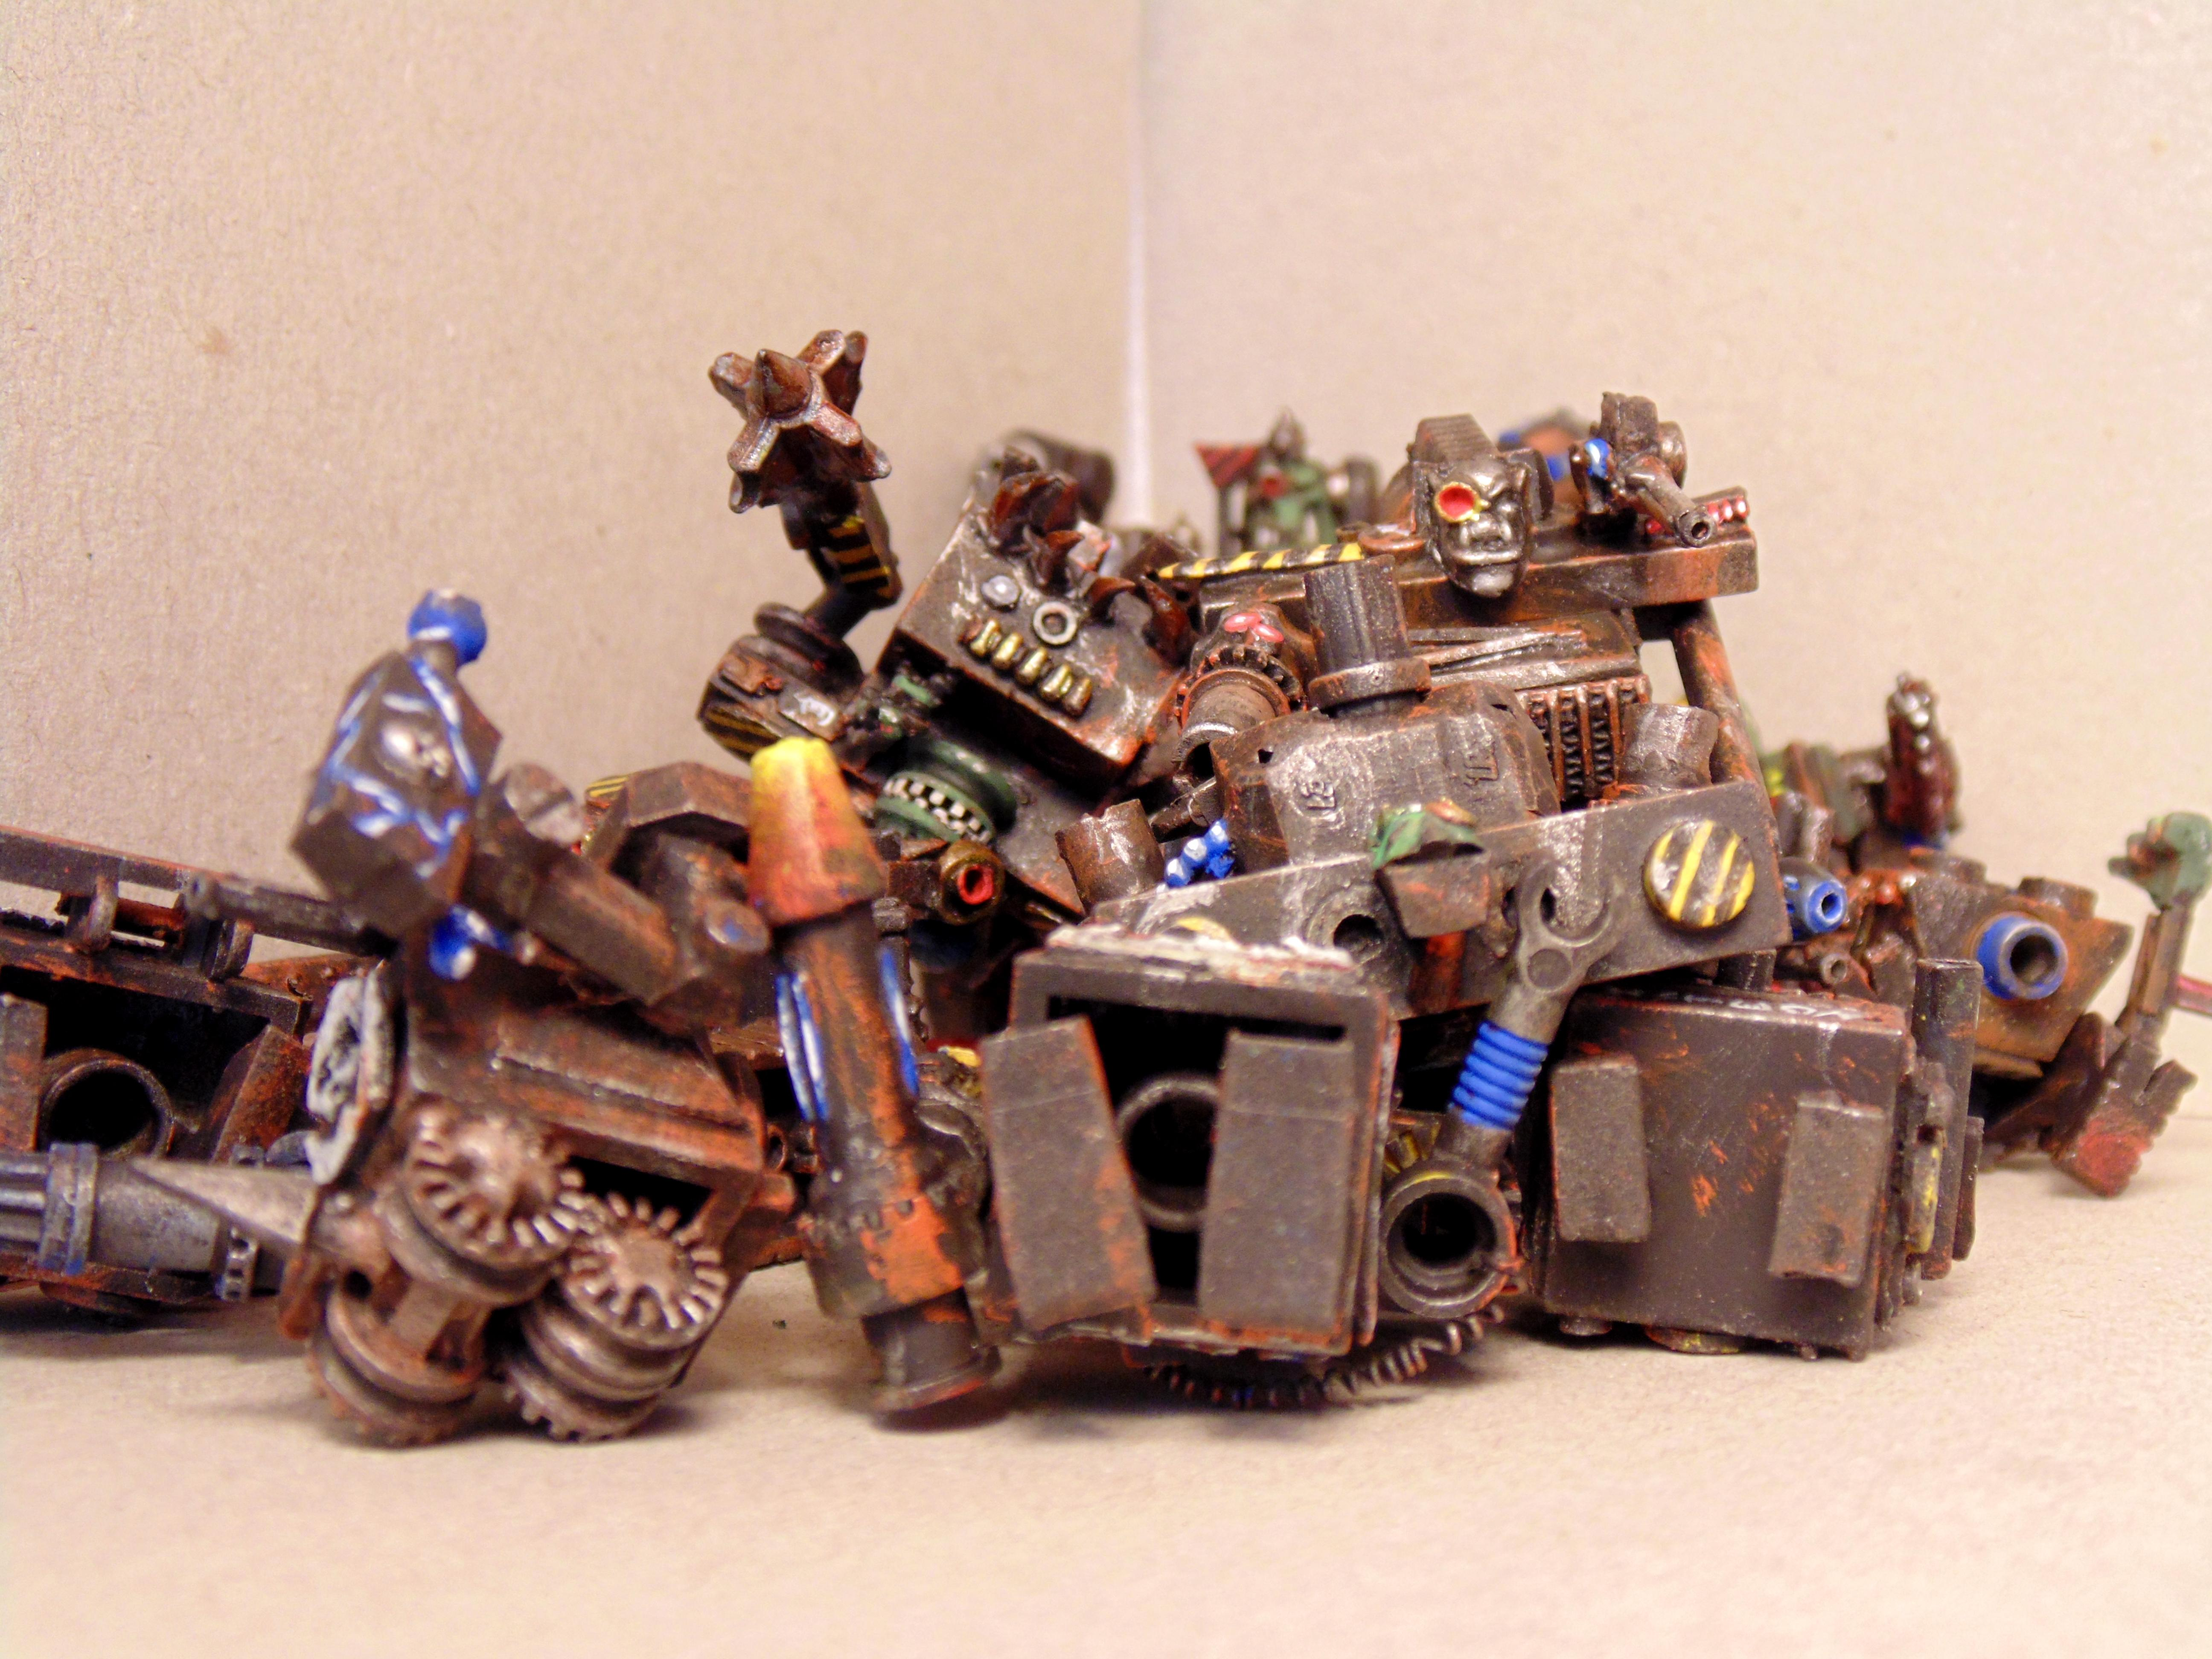 Army, Conversion, Dead Robots, Epic, Gargant, Green, Mob, Nob, Orks, Rust, Scrap Pile, Scratch, Scratch Build, Stampfa, Stompa, Superstompa, Waaagh, Warhammer 40,000